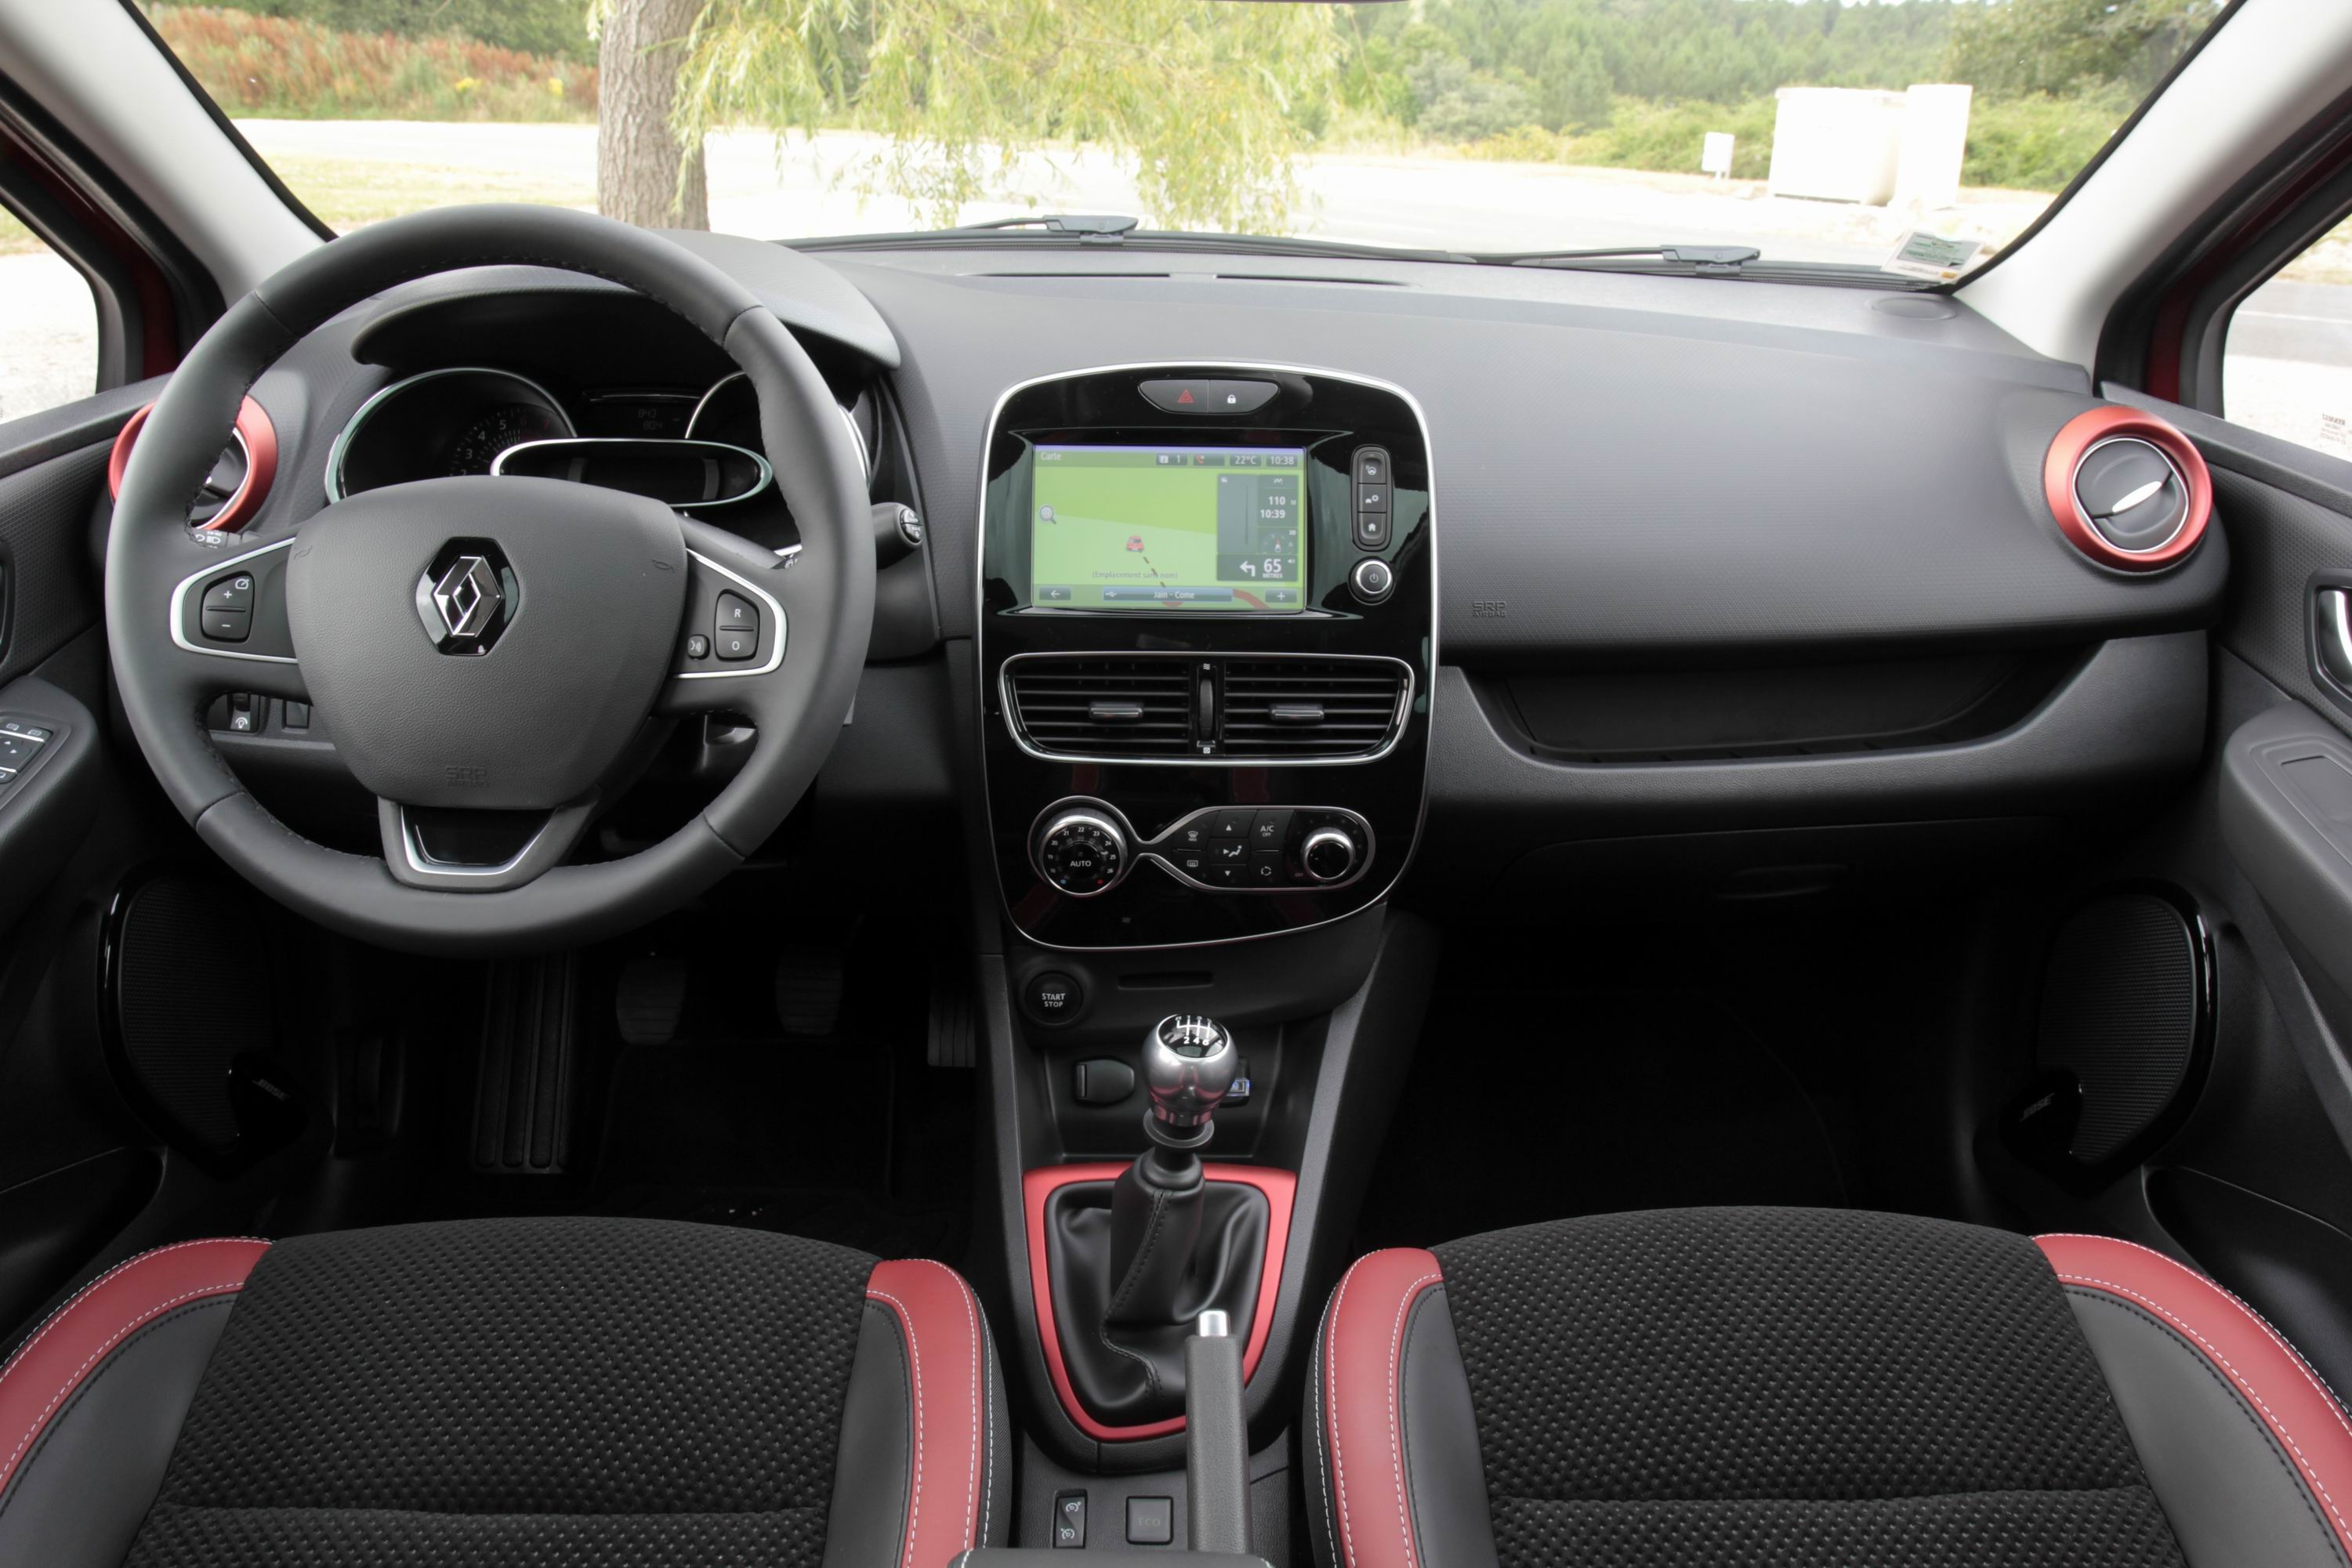 comparatif vid o renault clio restyl e vs peugeot 208 match retour. Black Bedroom Furniture Sets. Home Design Ideas